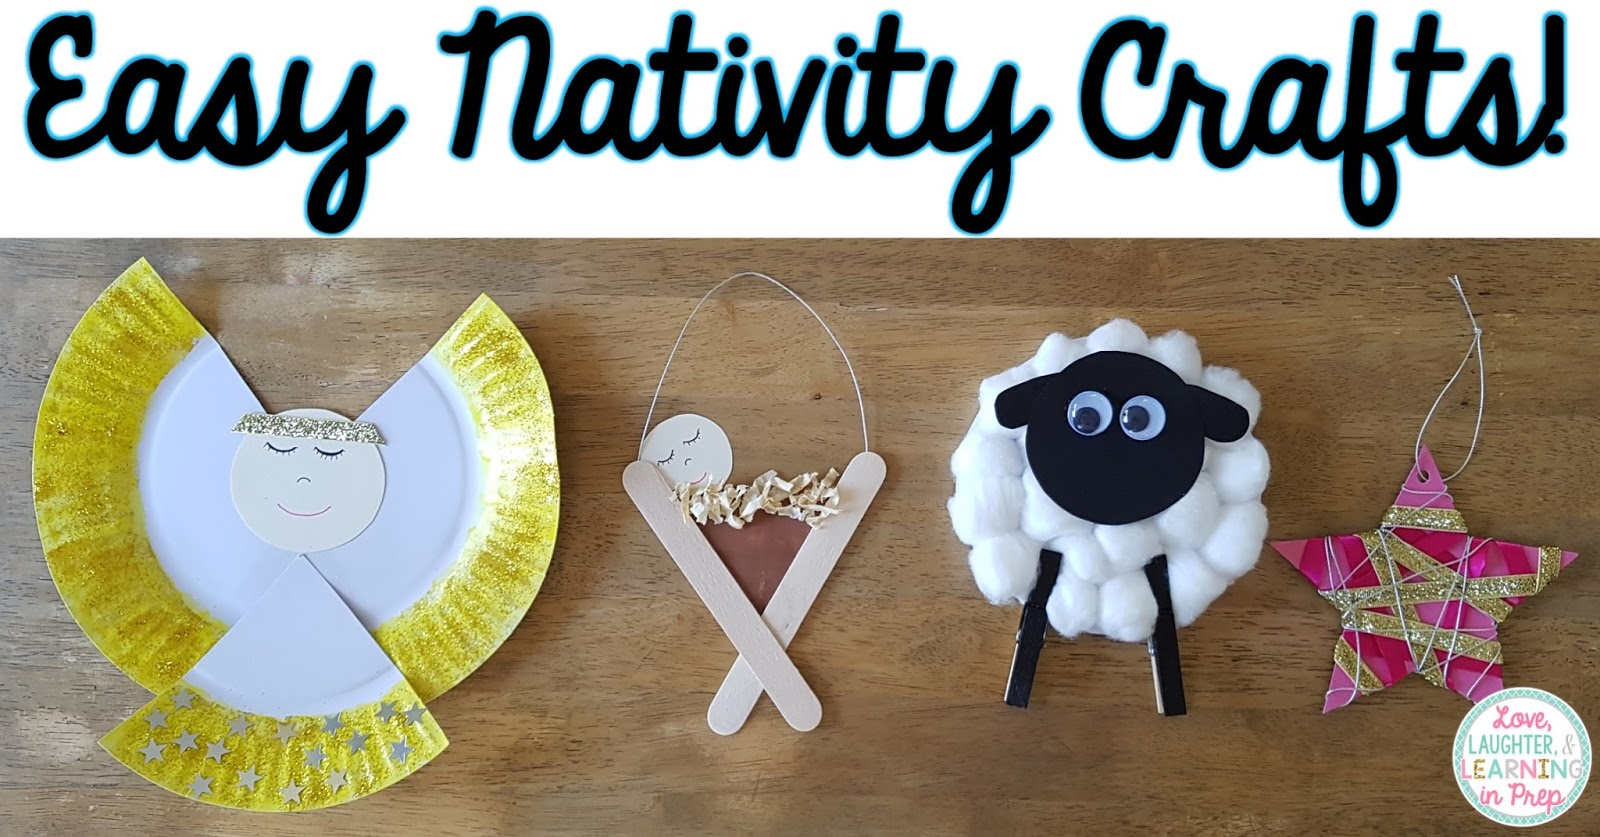 Love Laughter And Learning In Prep Easy Nativity Crafts